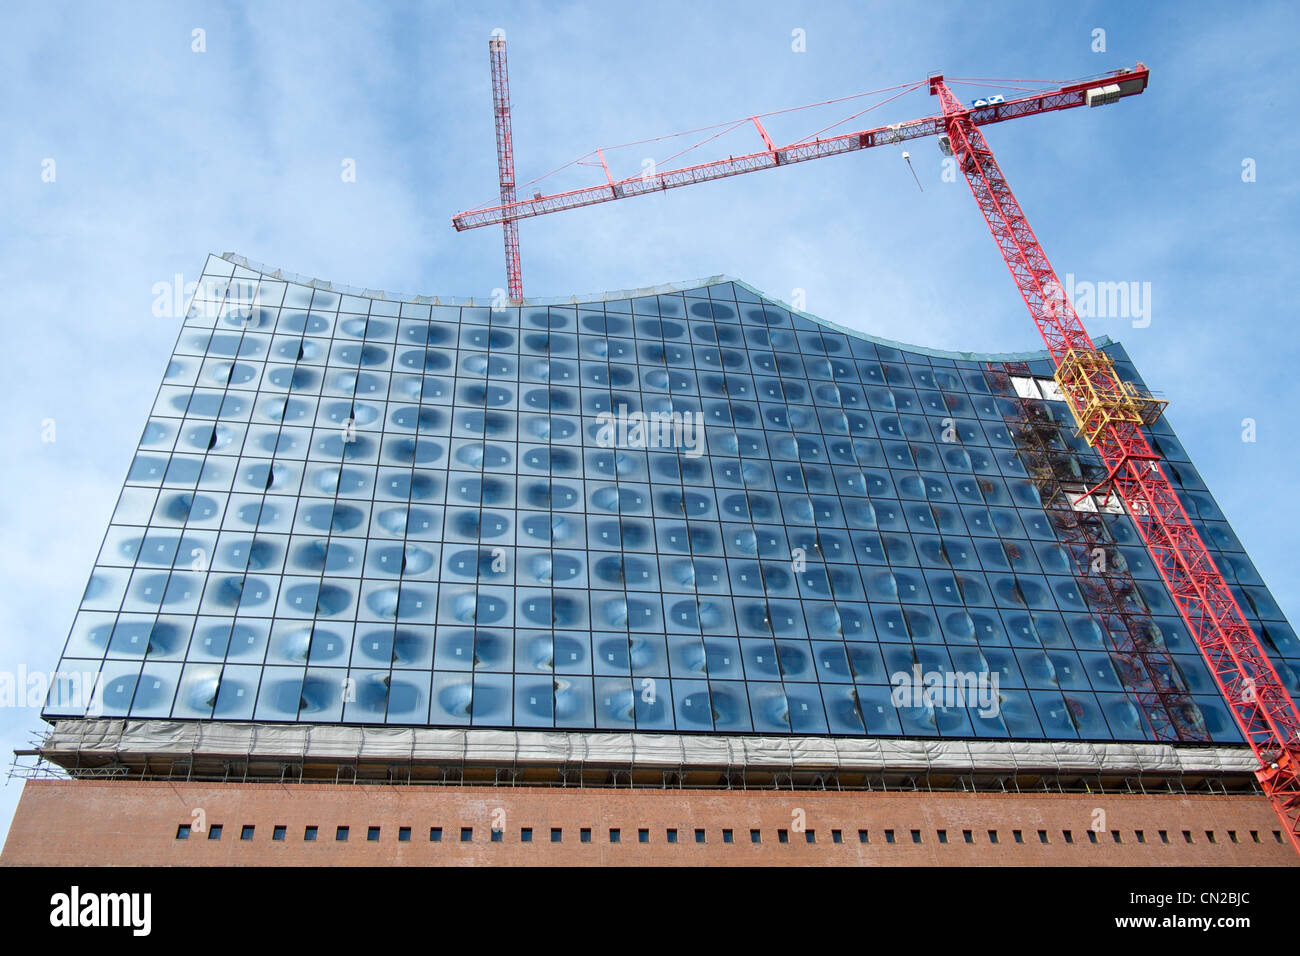 Stock photo hamburg germany riverside new - New Opera House Under Construction At Hafencity Modern Property Development In Hamburg Germany